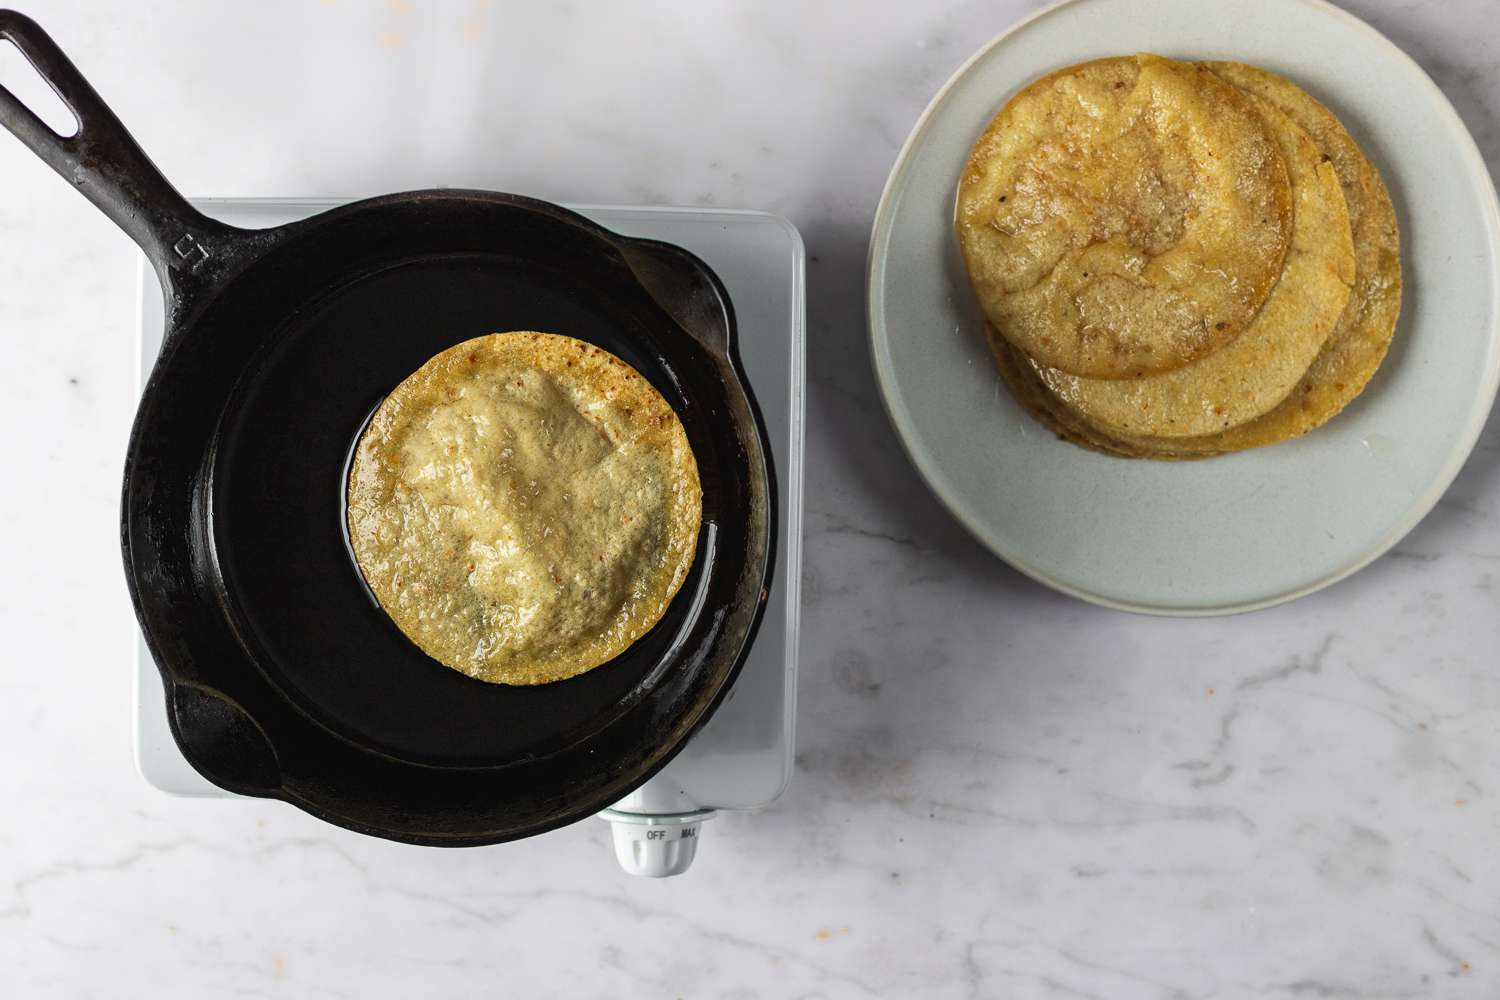 tortilla in a pan with oil